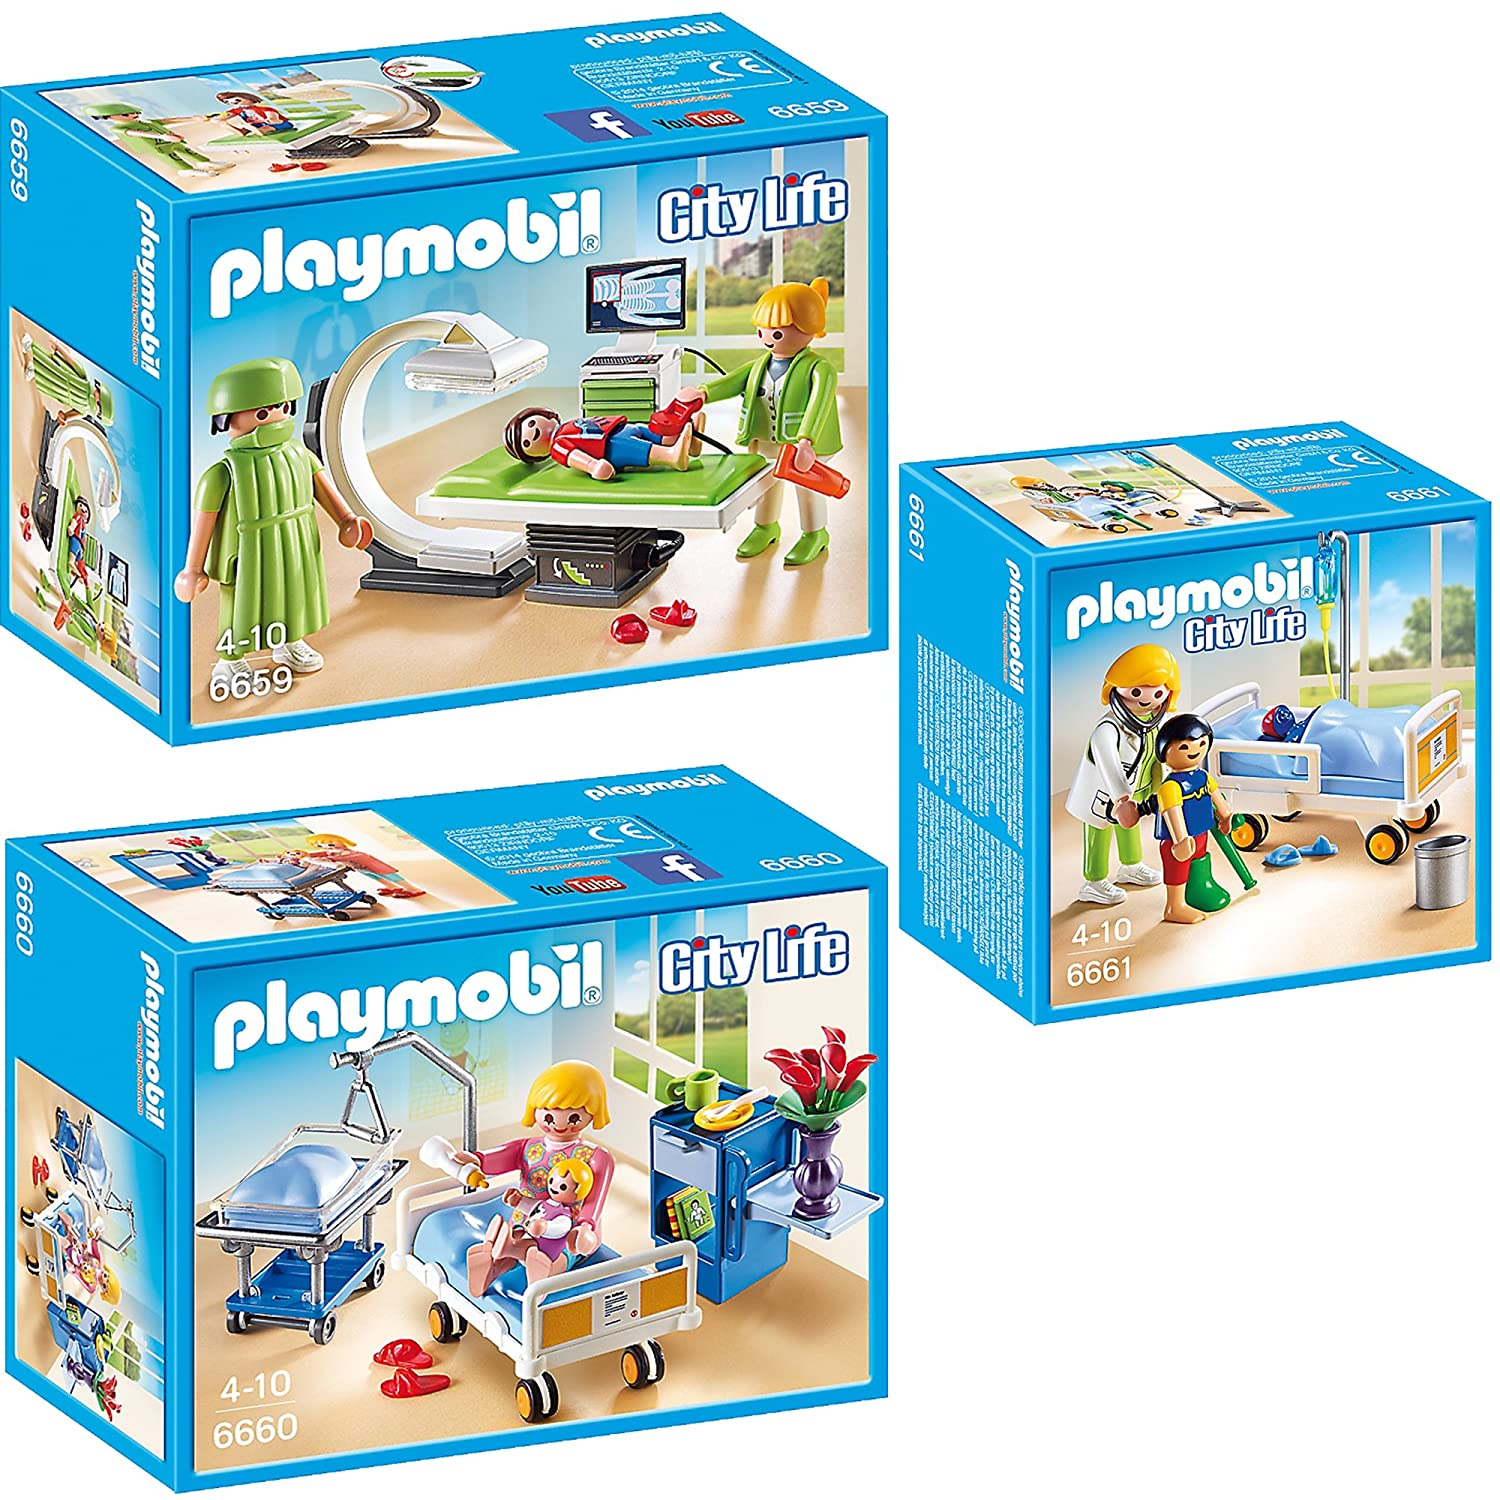 Playmobil City Life Kinderklinik 3er Set